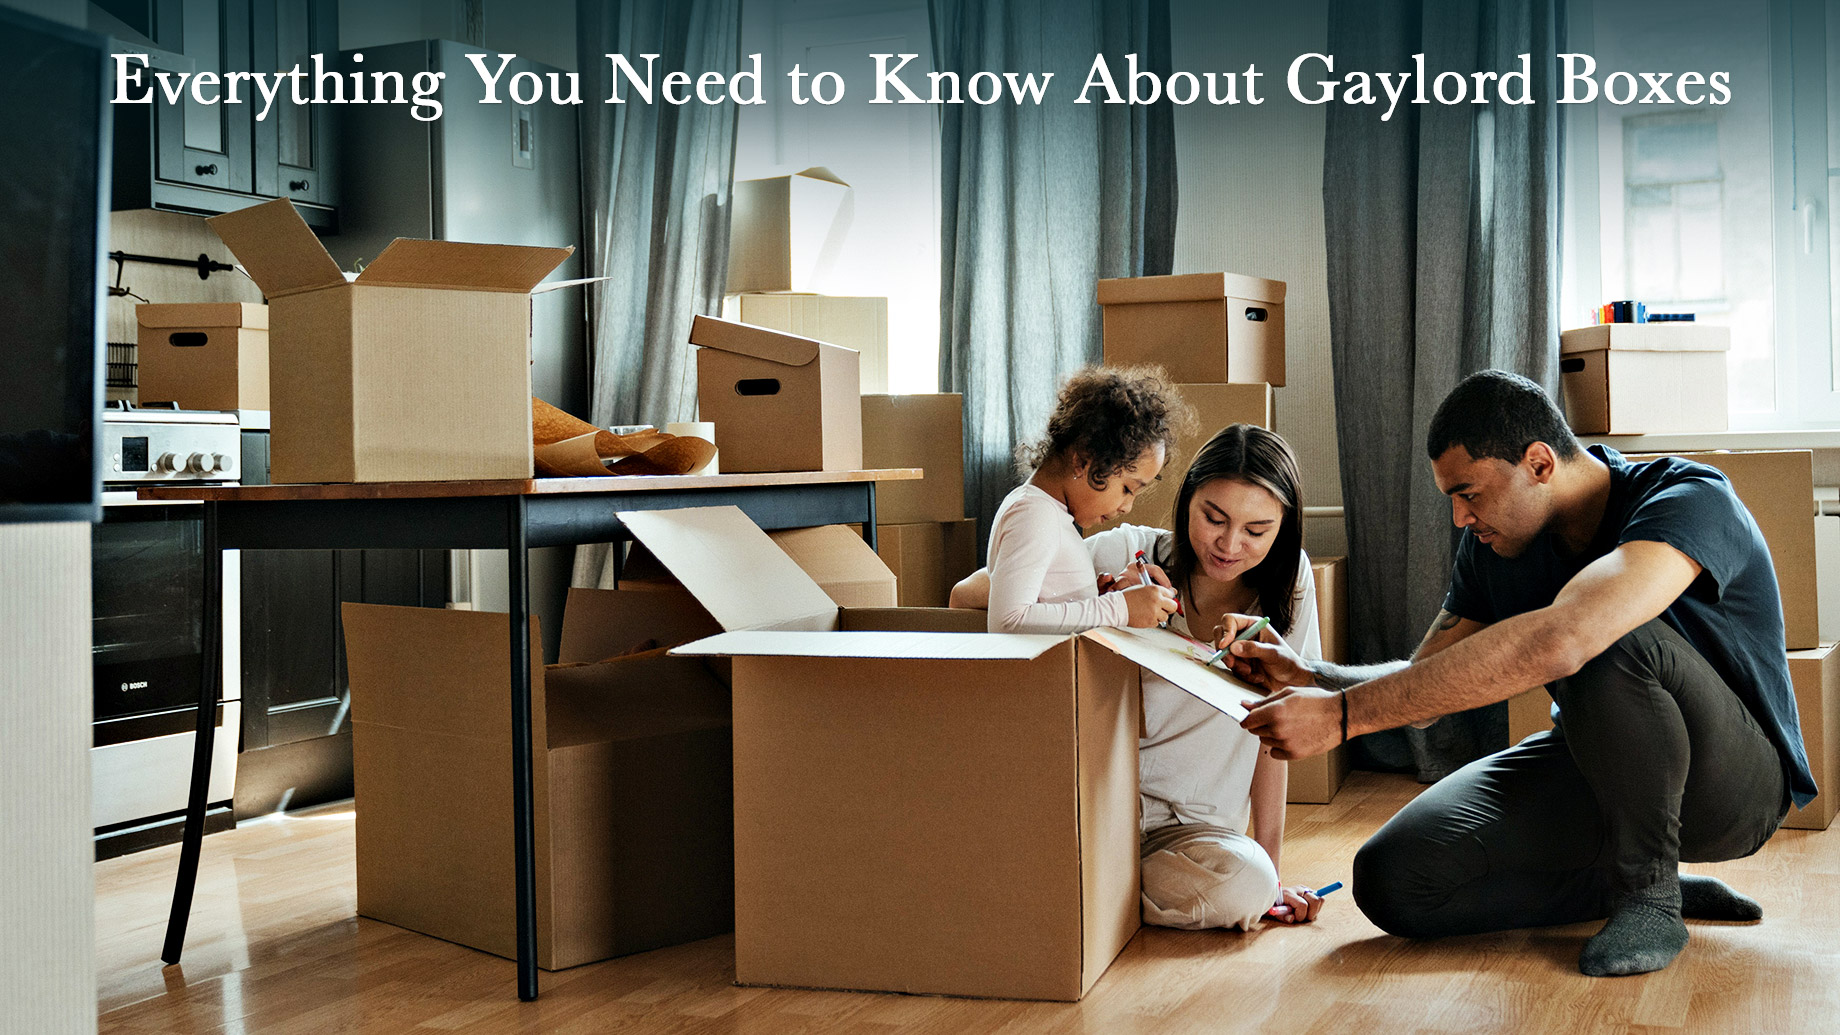 Everything You Need to Know About Gaylord Boxes